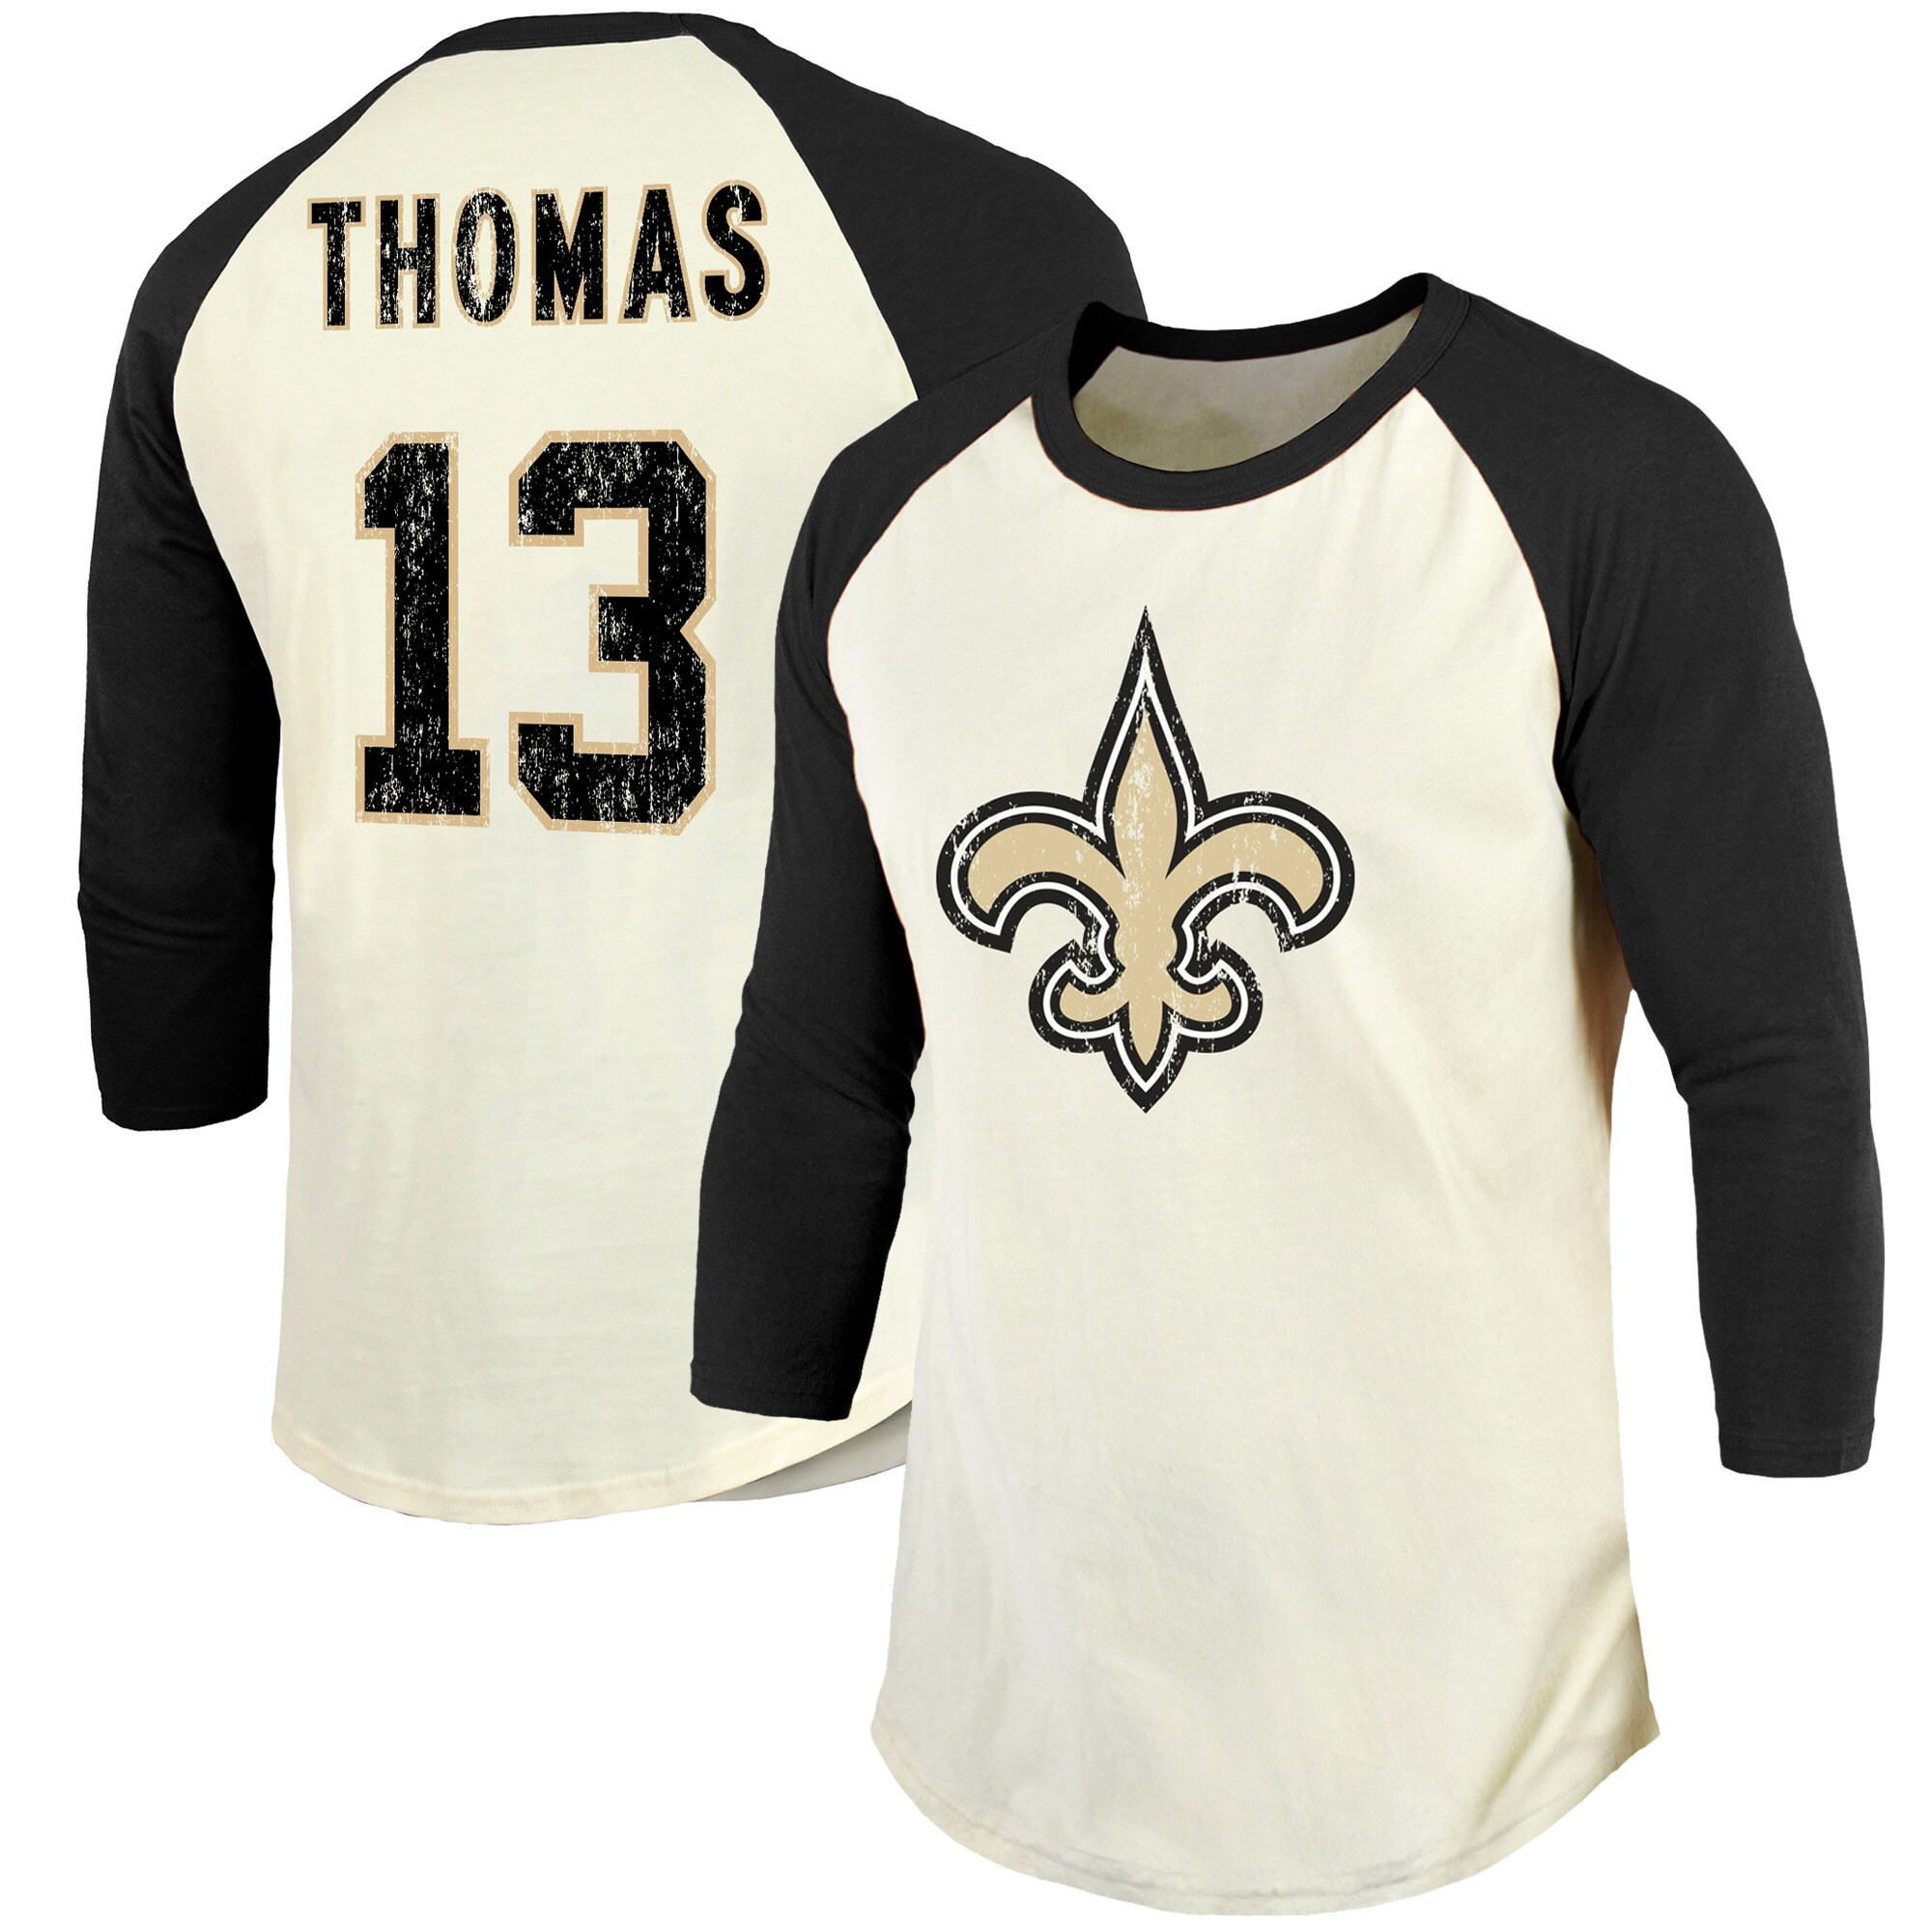 Michael Thomas New Orleans Saints Fanatics Branded Vintage Player Name & Number Raglan 3/4-Sleeve T-Shirt - Cream/Black